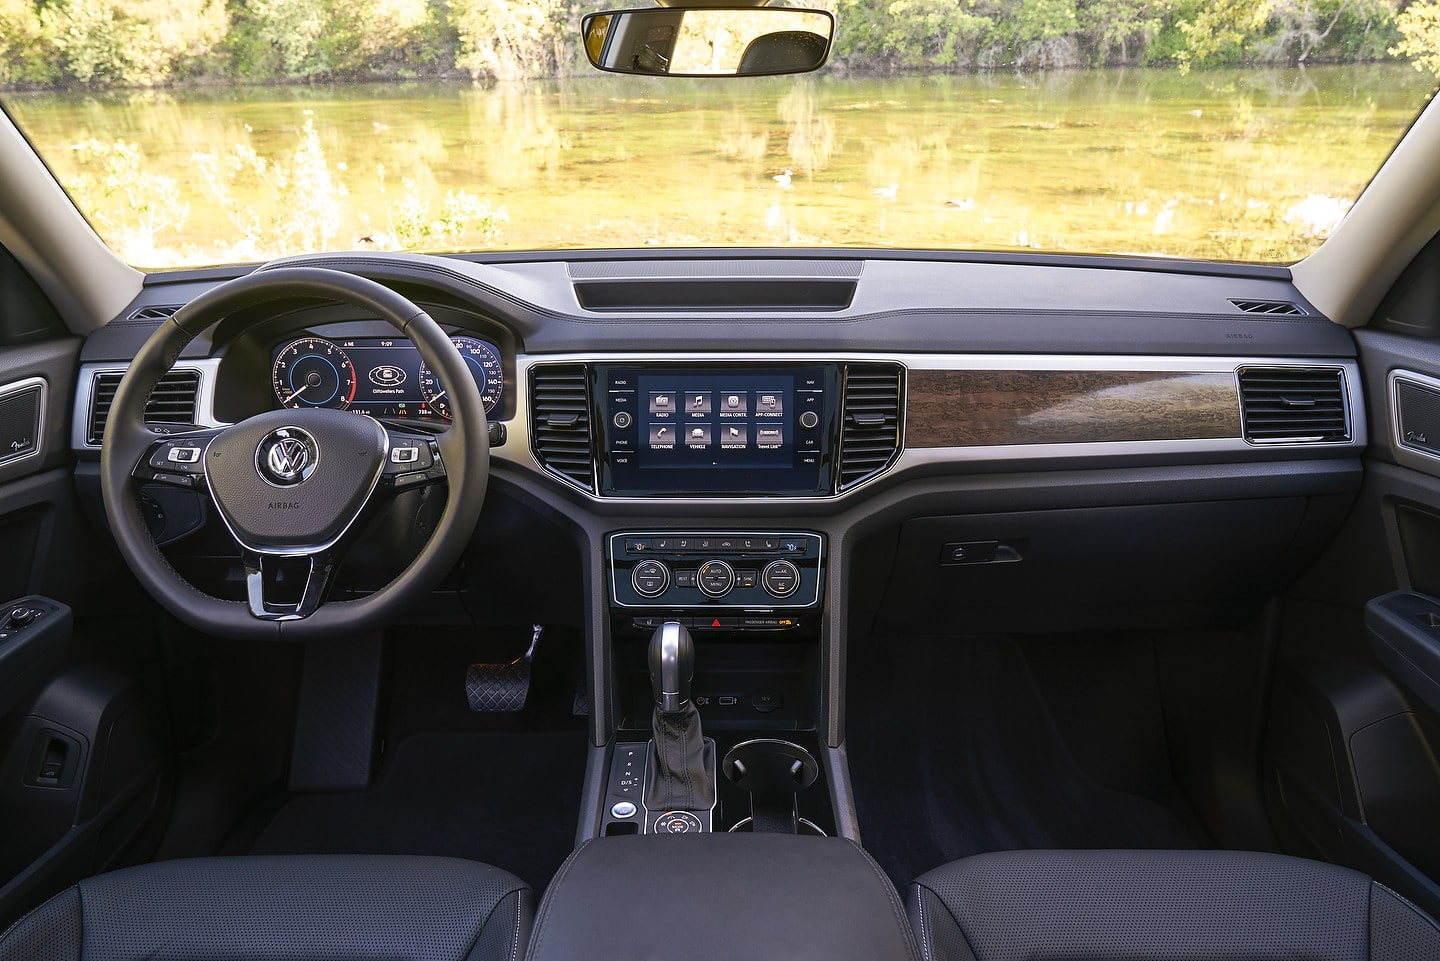 Volkswagen Atlas Interior